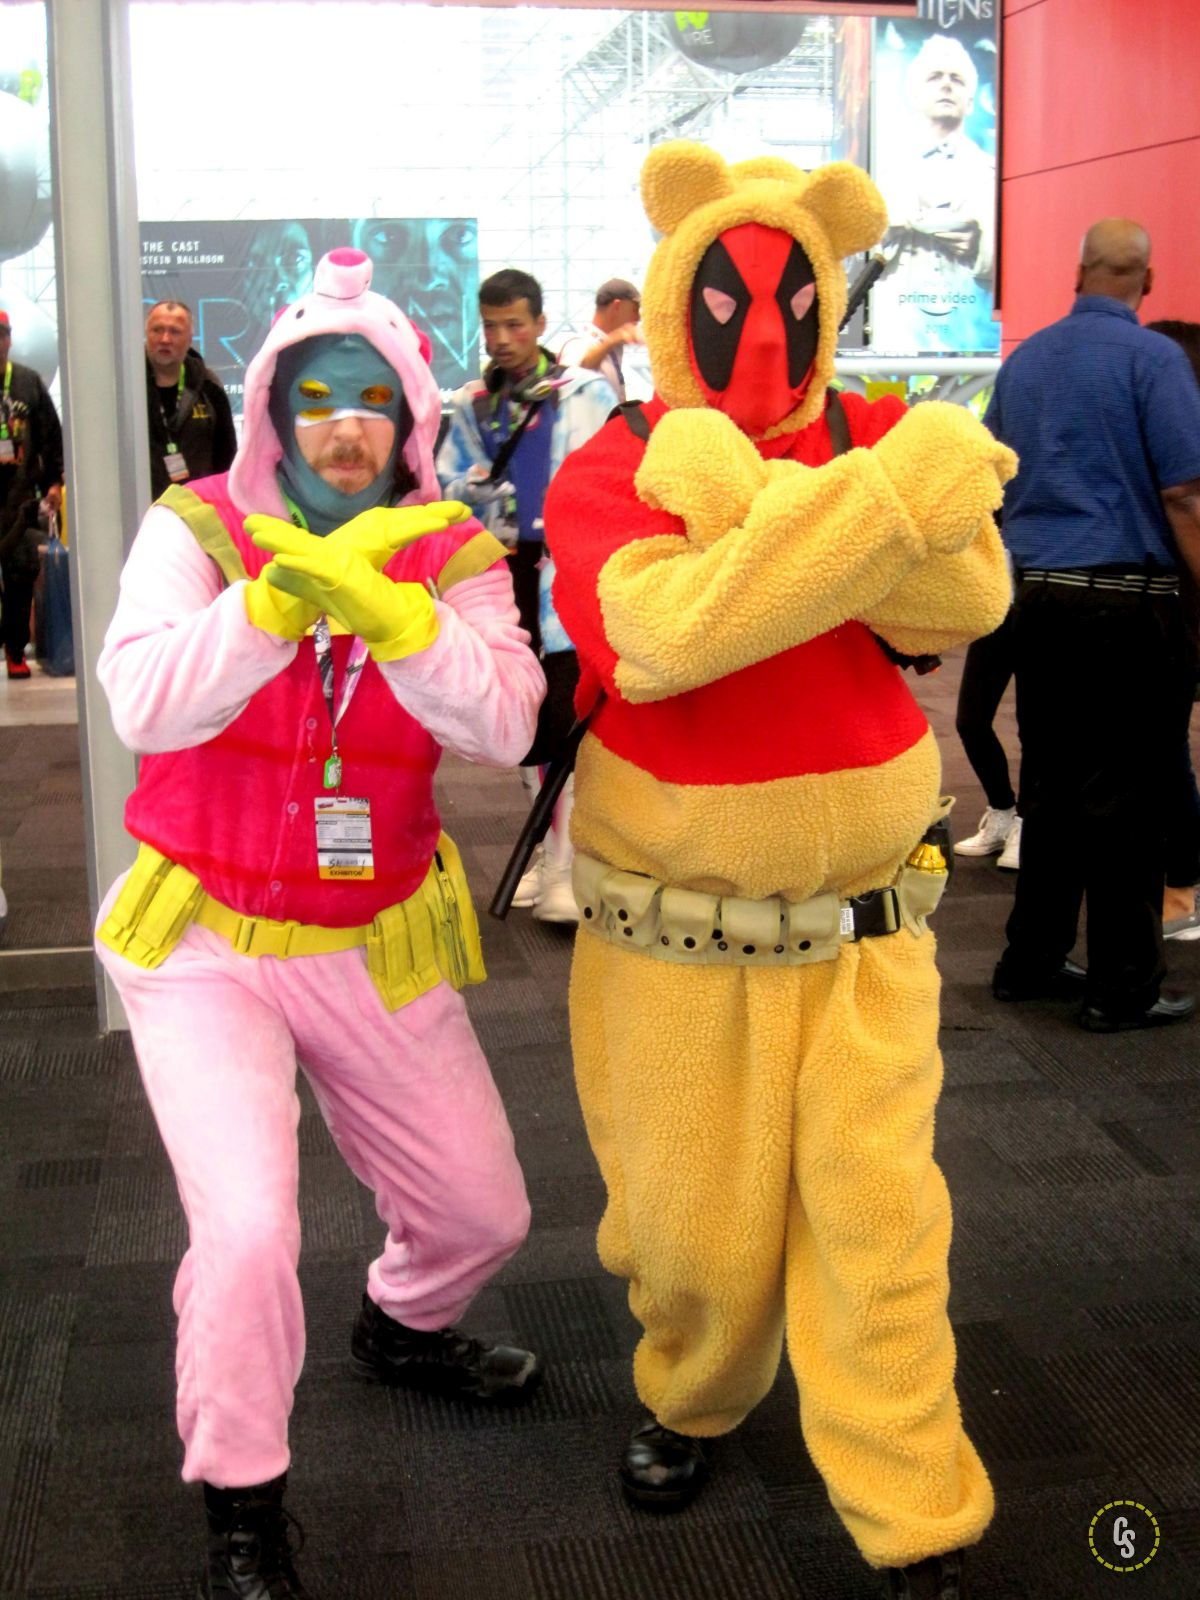 nycc183_010